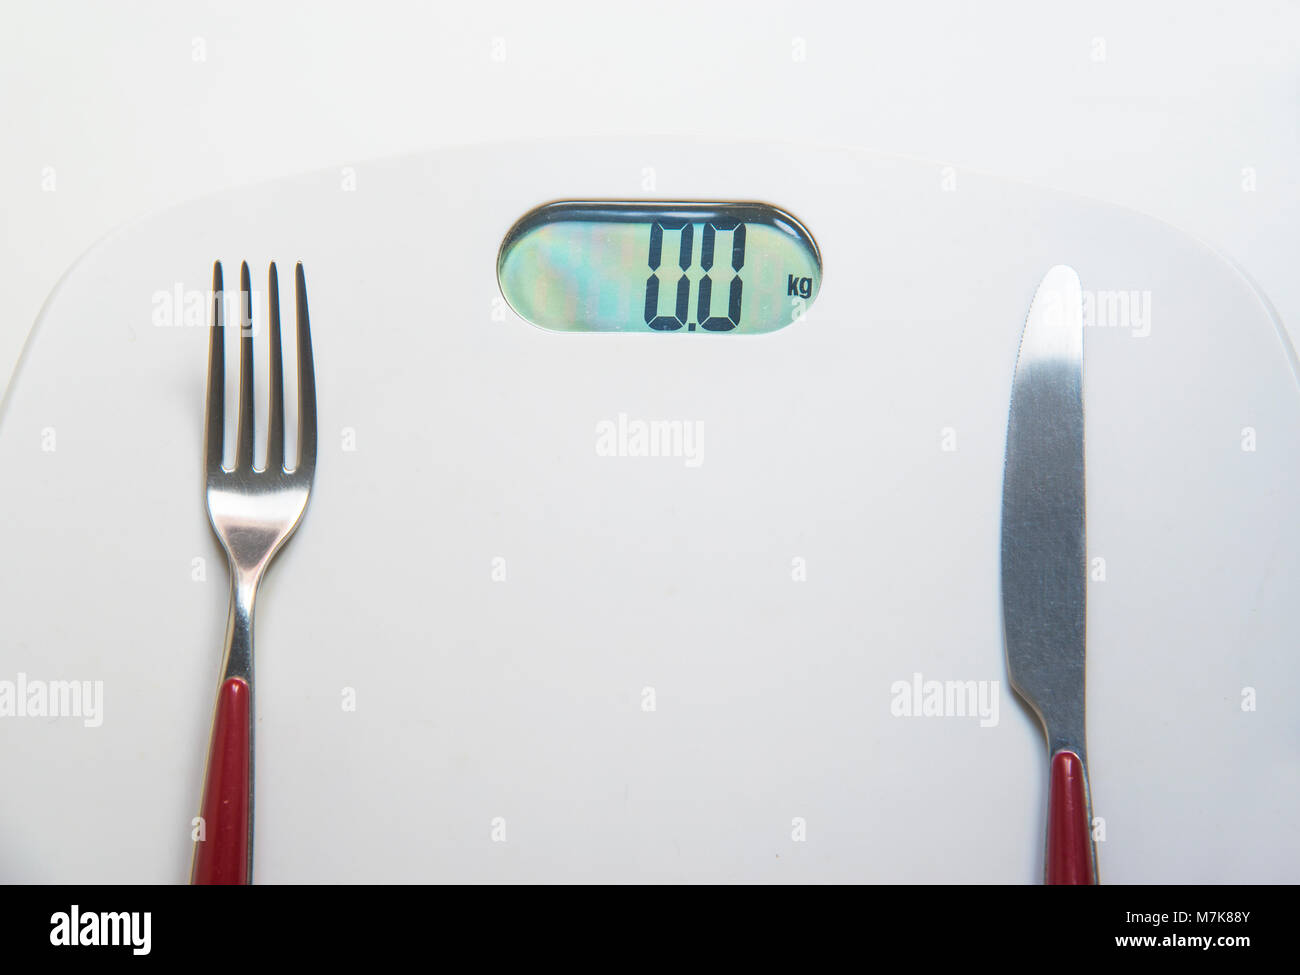 Fork and knife on a weight scale. - Stock Image